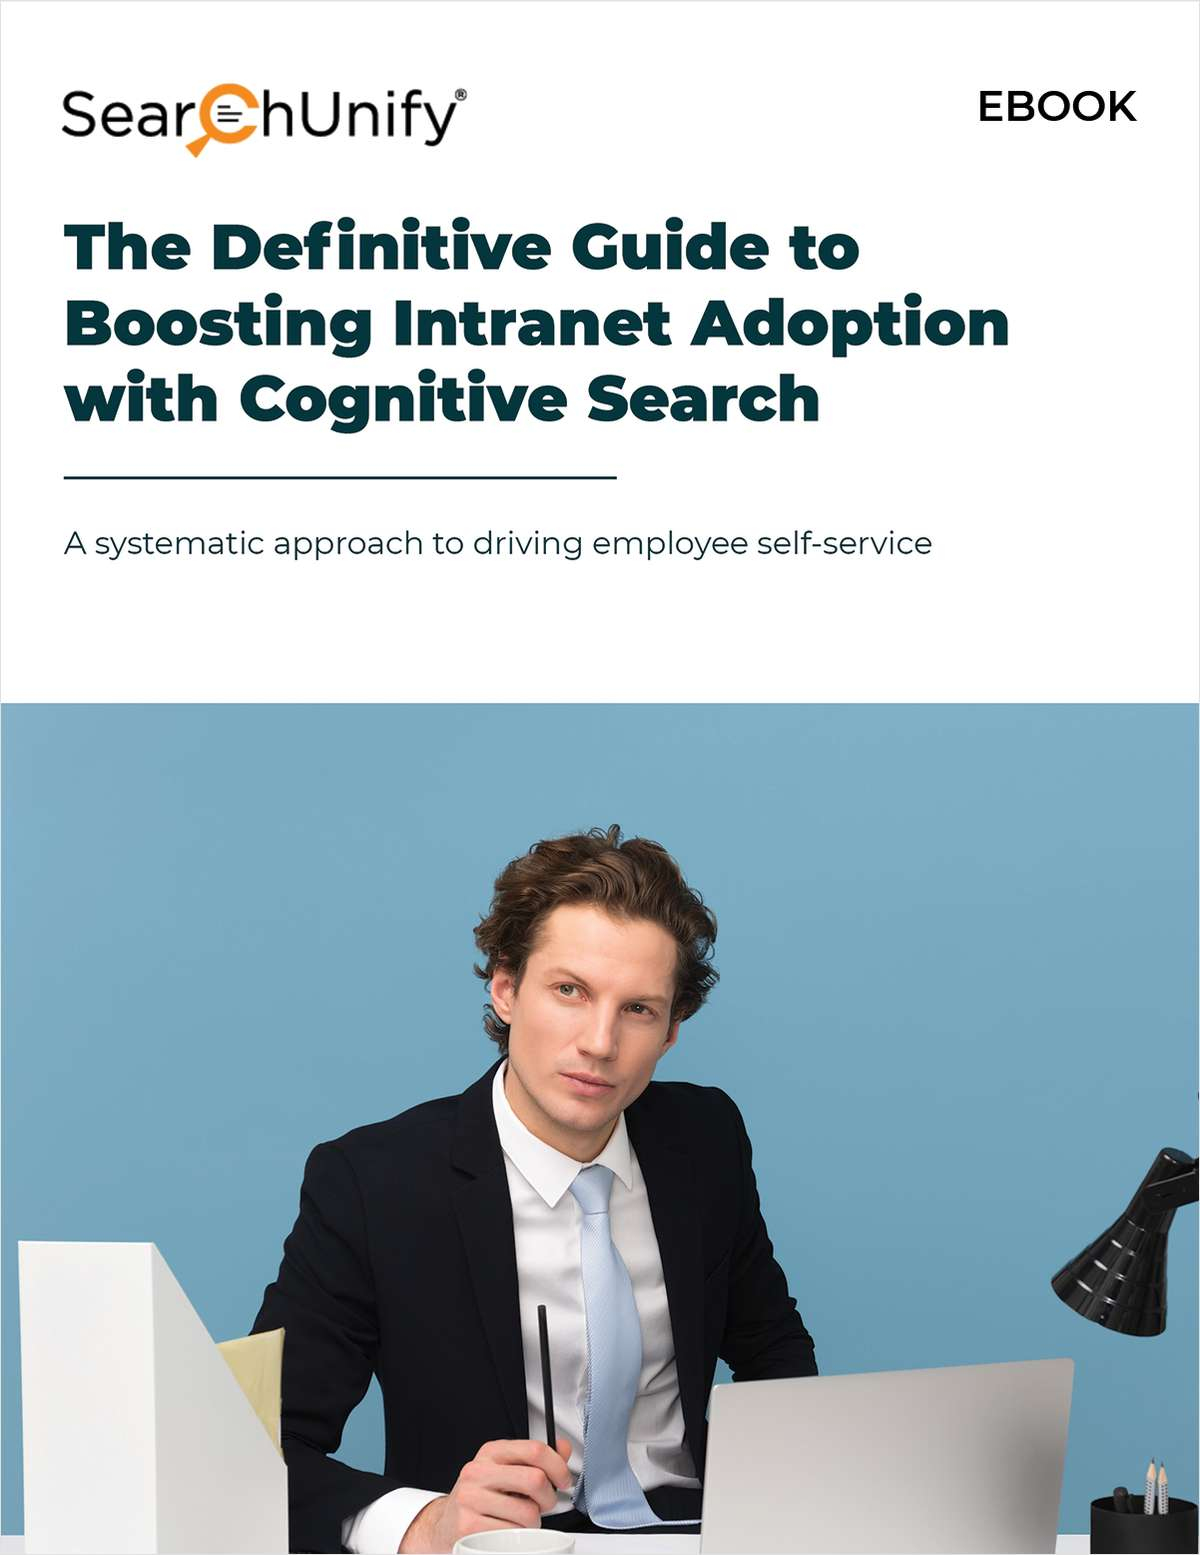 The Definitive Guide to Boosting Intranet Adoption with Cognitive Search